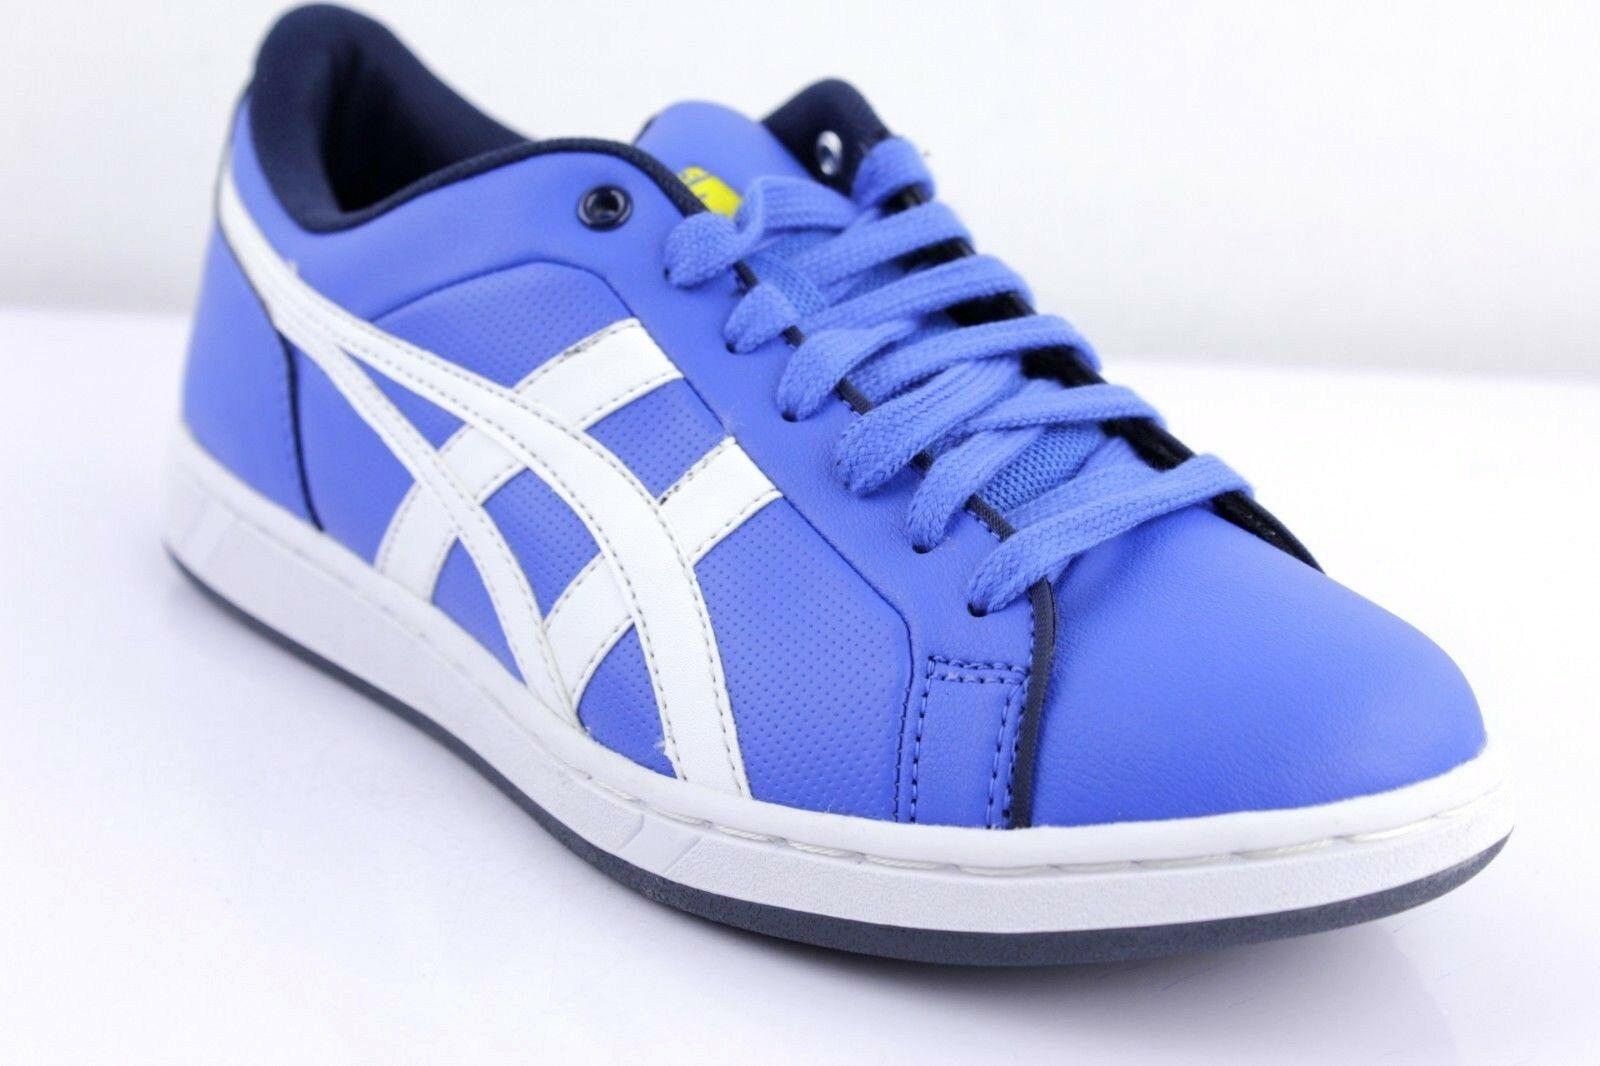 Asics Onitsuka Tiger larally Blue Unisex Sneaker Low Low Shoes Leather Shoes The most popular shoes for men and women